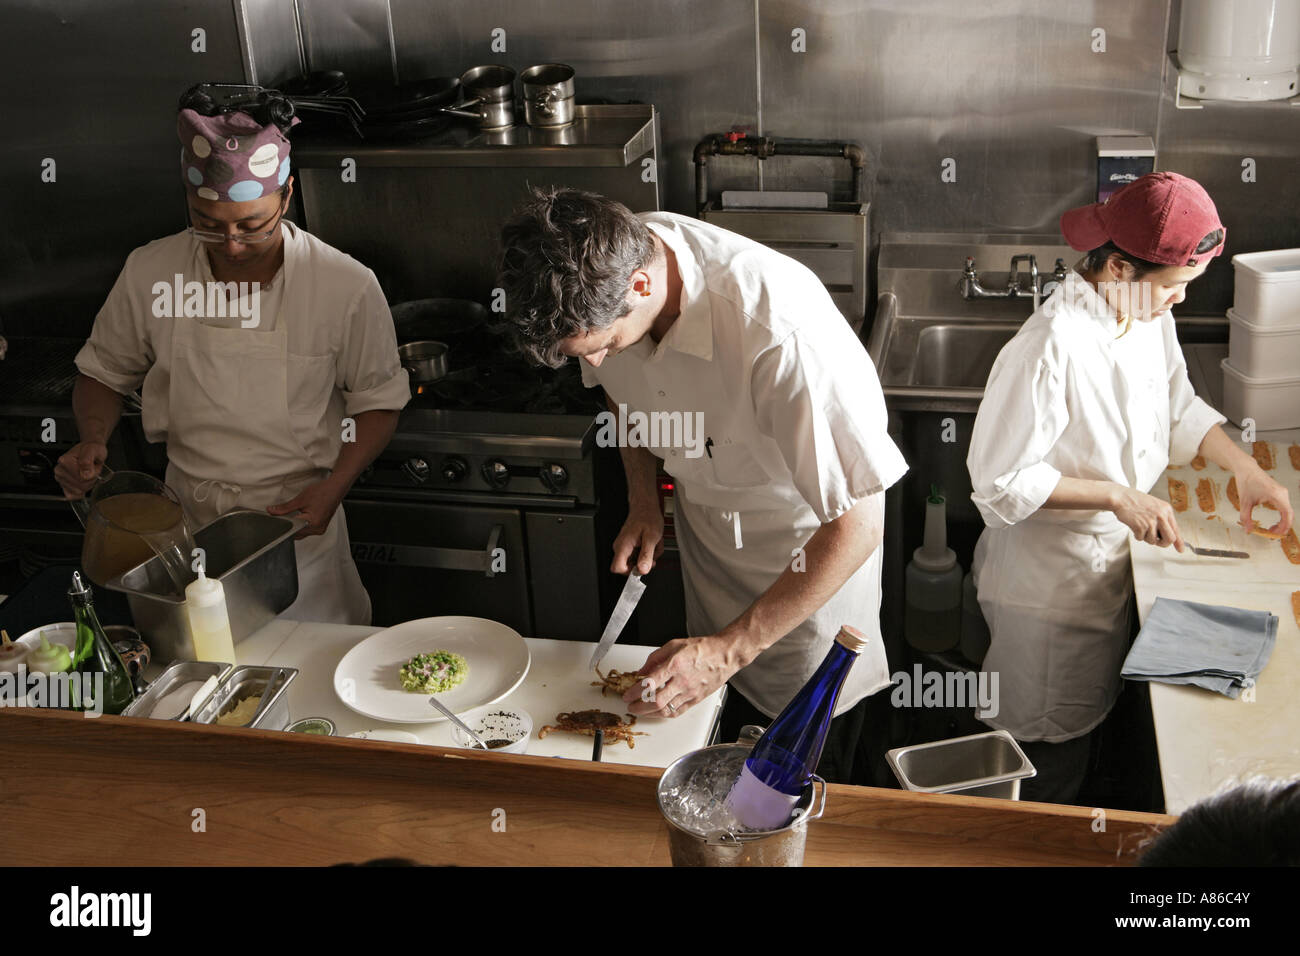 Three people working in kitchen front view stock photo for Amenagement cuisine de restaurant